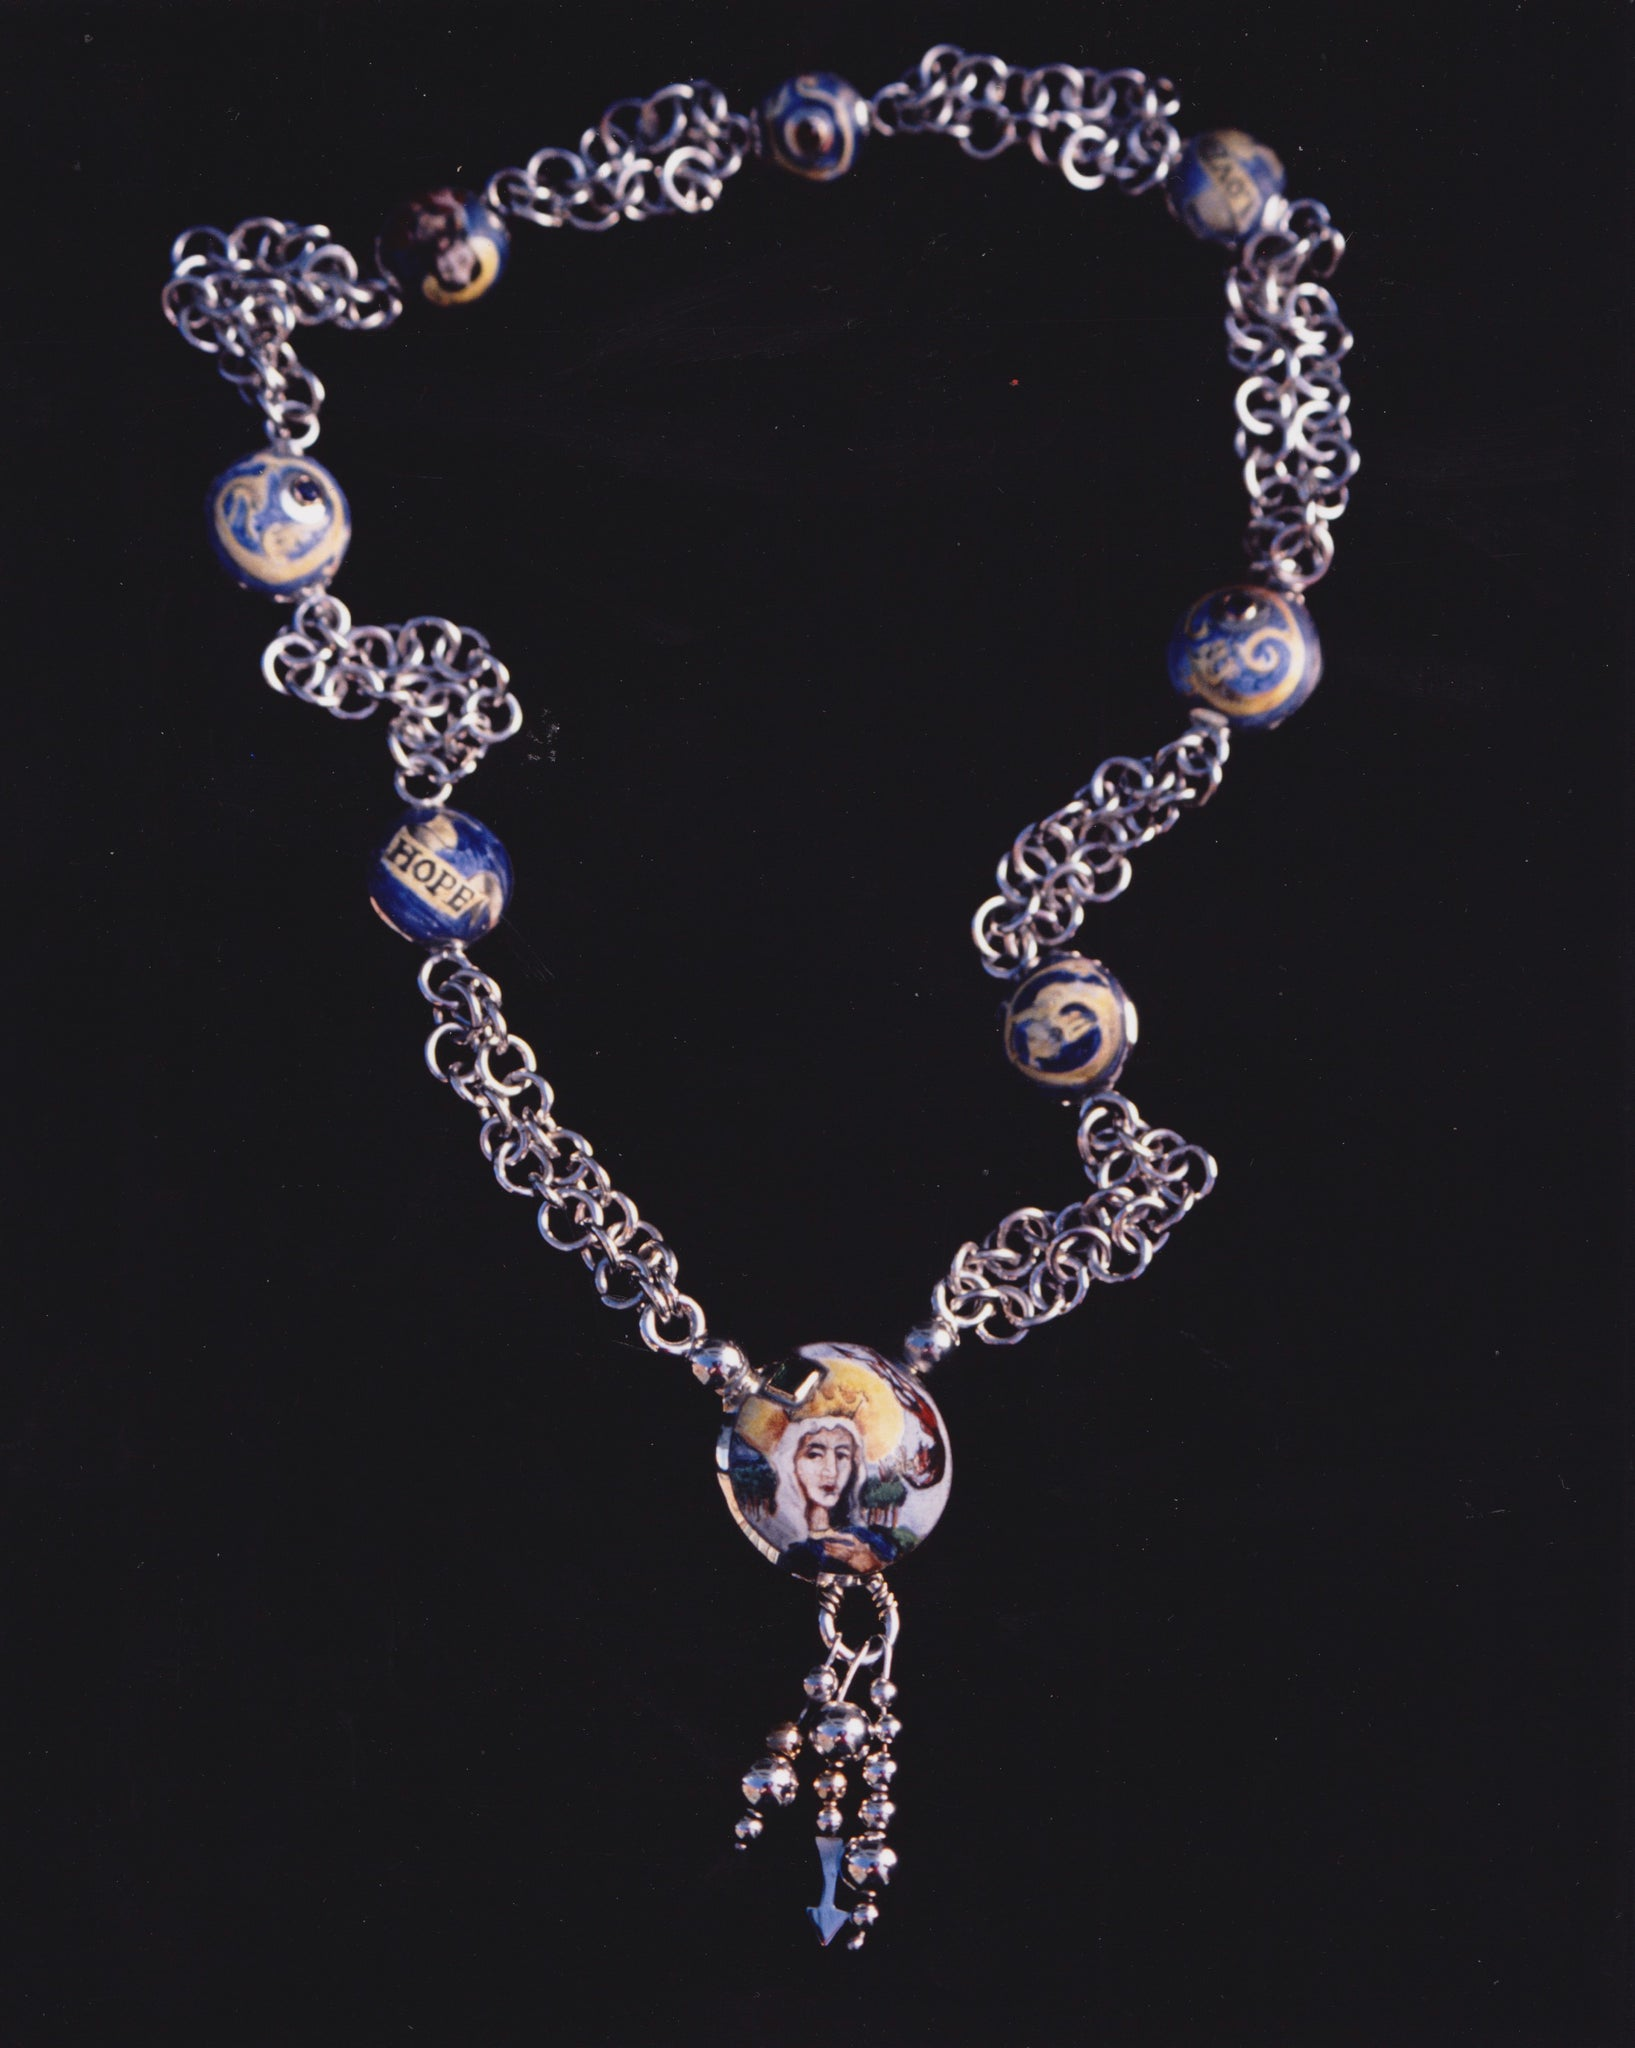 EARLY WORK<br>ENAMEL NECKLACE<br>1991